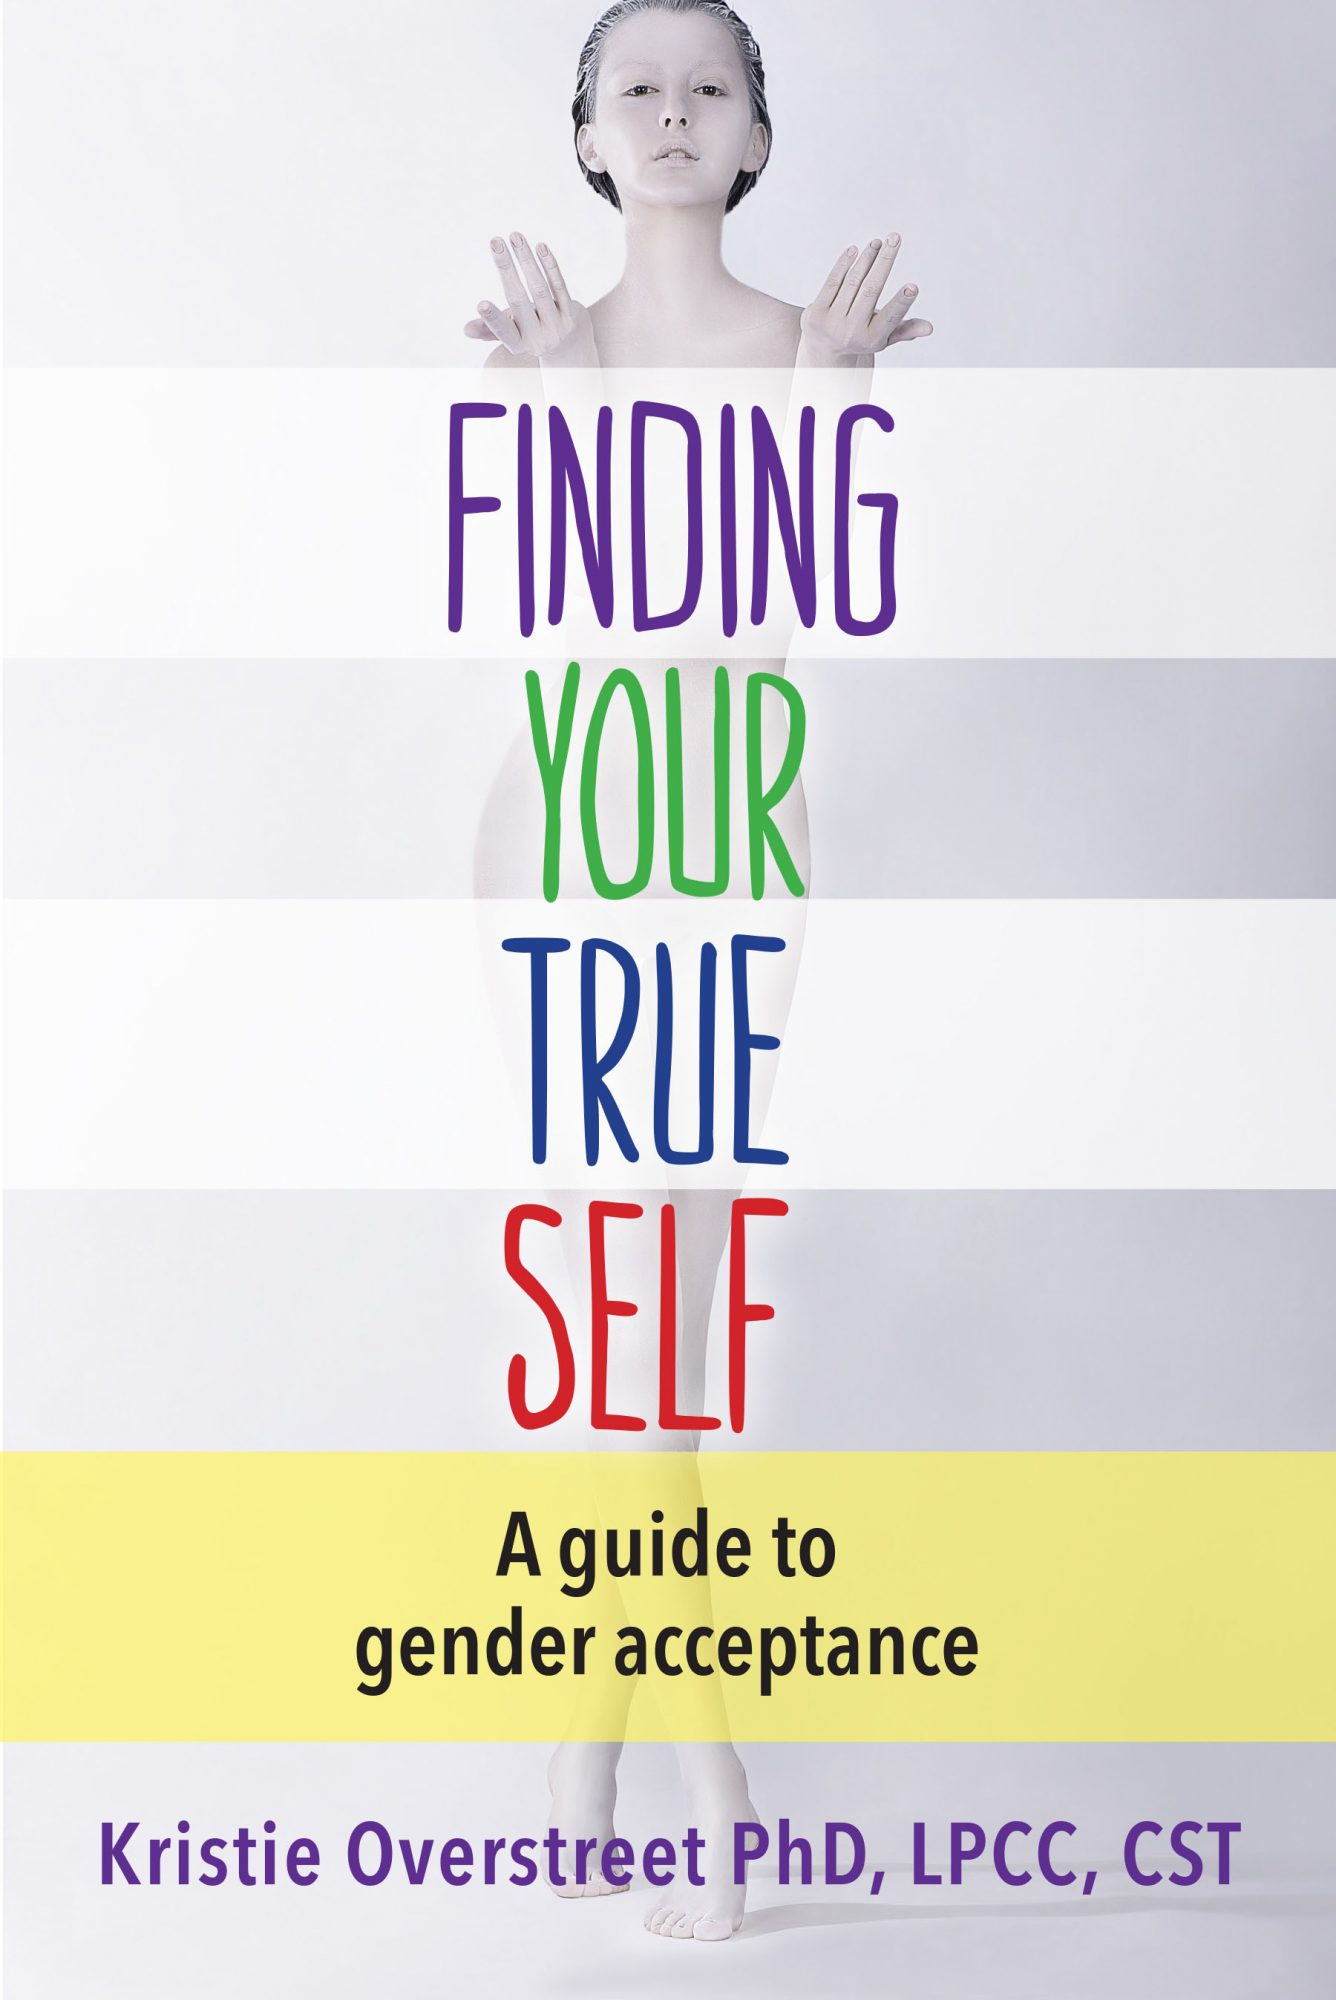 How to Find Yourself: A Guide to Finding Yourself